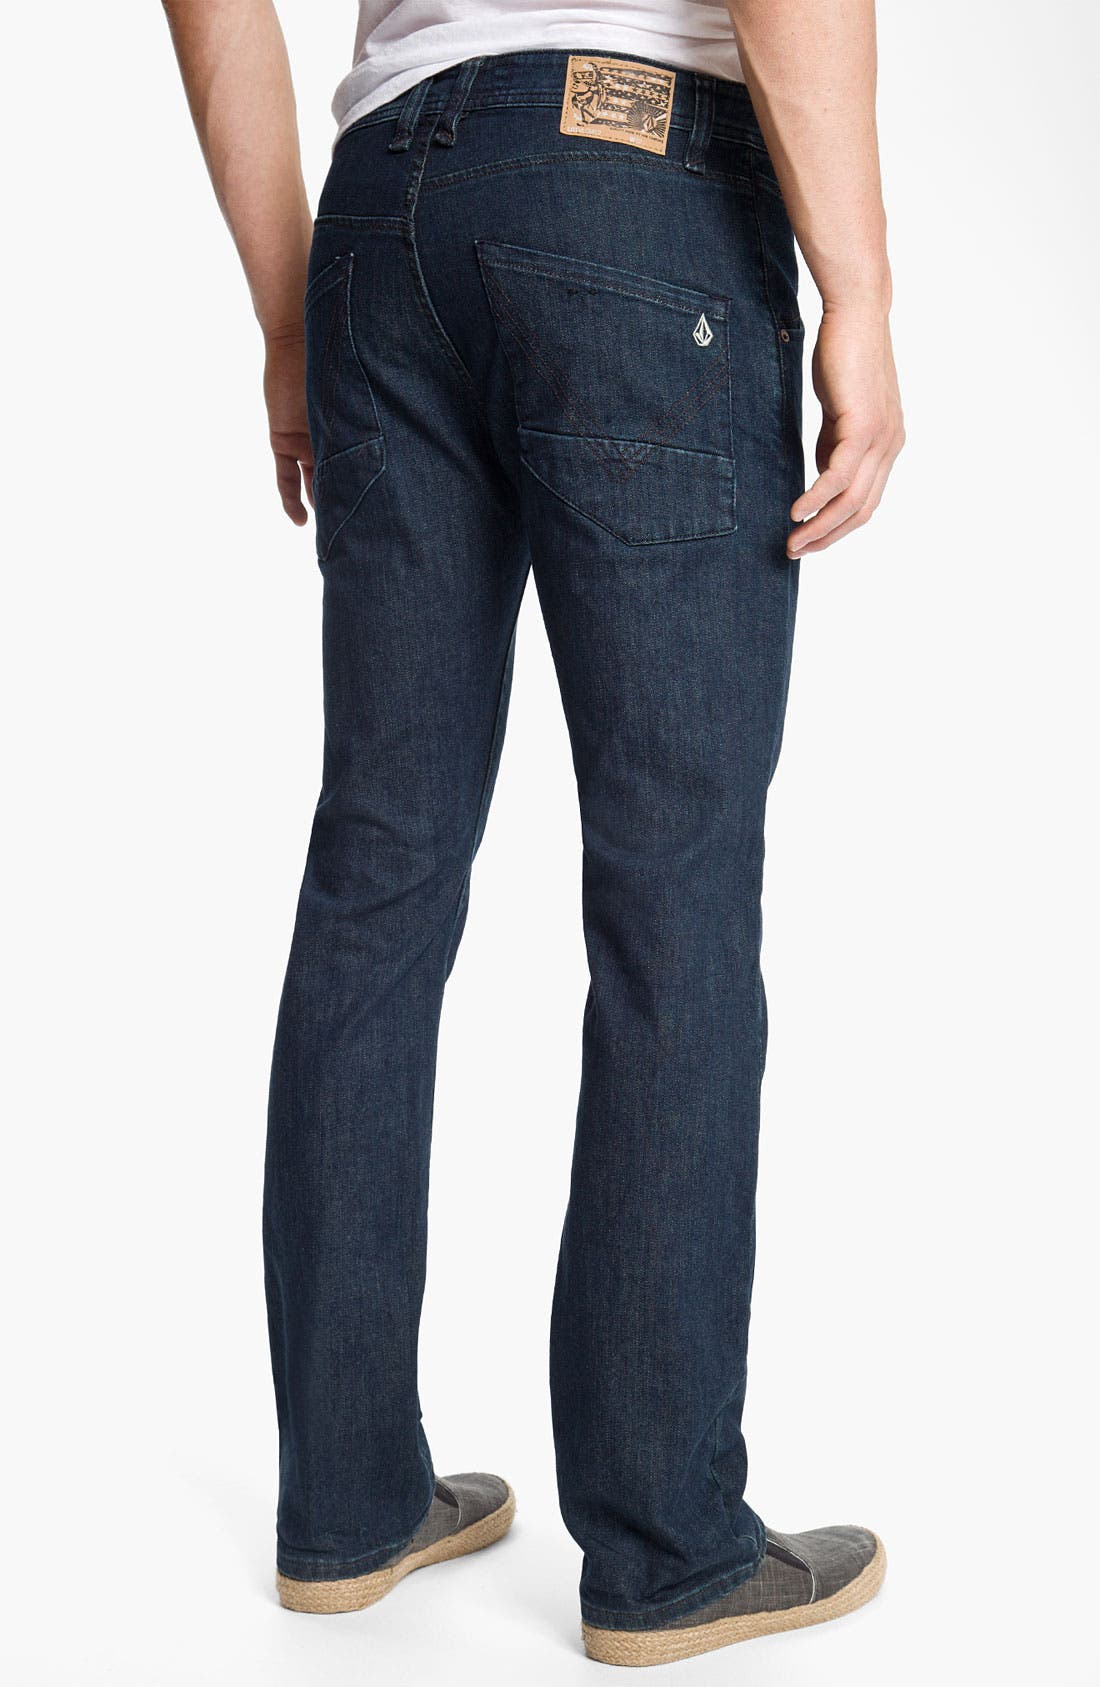 Alternate Image 1 Selected - Volcom 'Nova' Slim Straight Leg Jeans (Los Tintos) (Online Only)